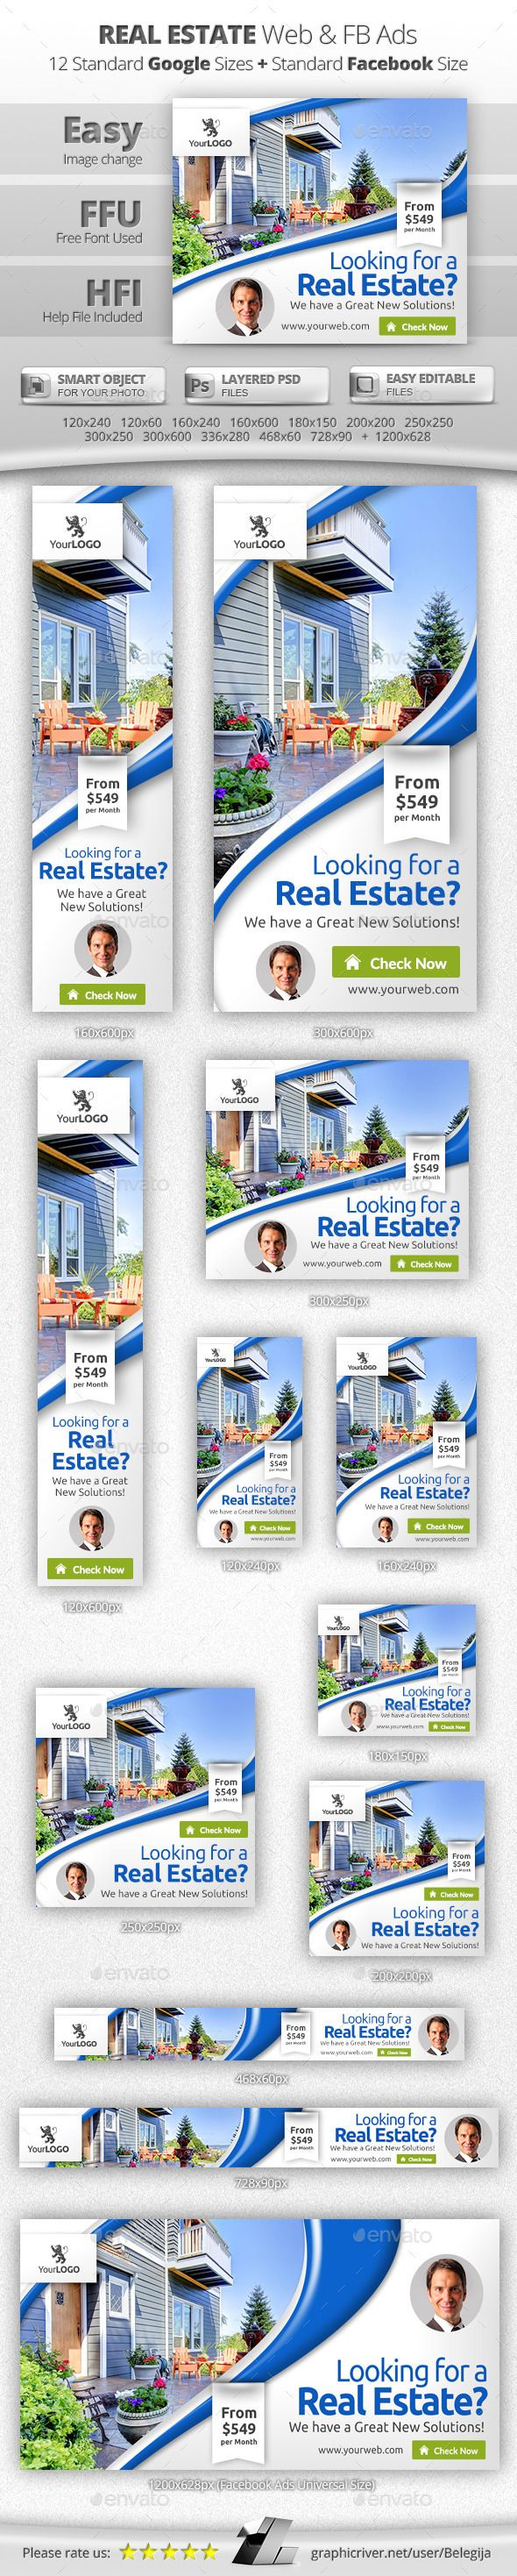 Real Estate Web & Facebook Banners Template #bannerdesign #webbanners Download: http://graphicriver.net/item/real-estate-web-facebook-banners/12773380?ref=ksioks